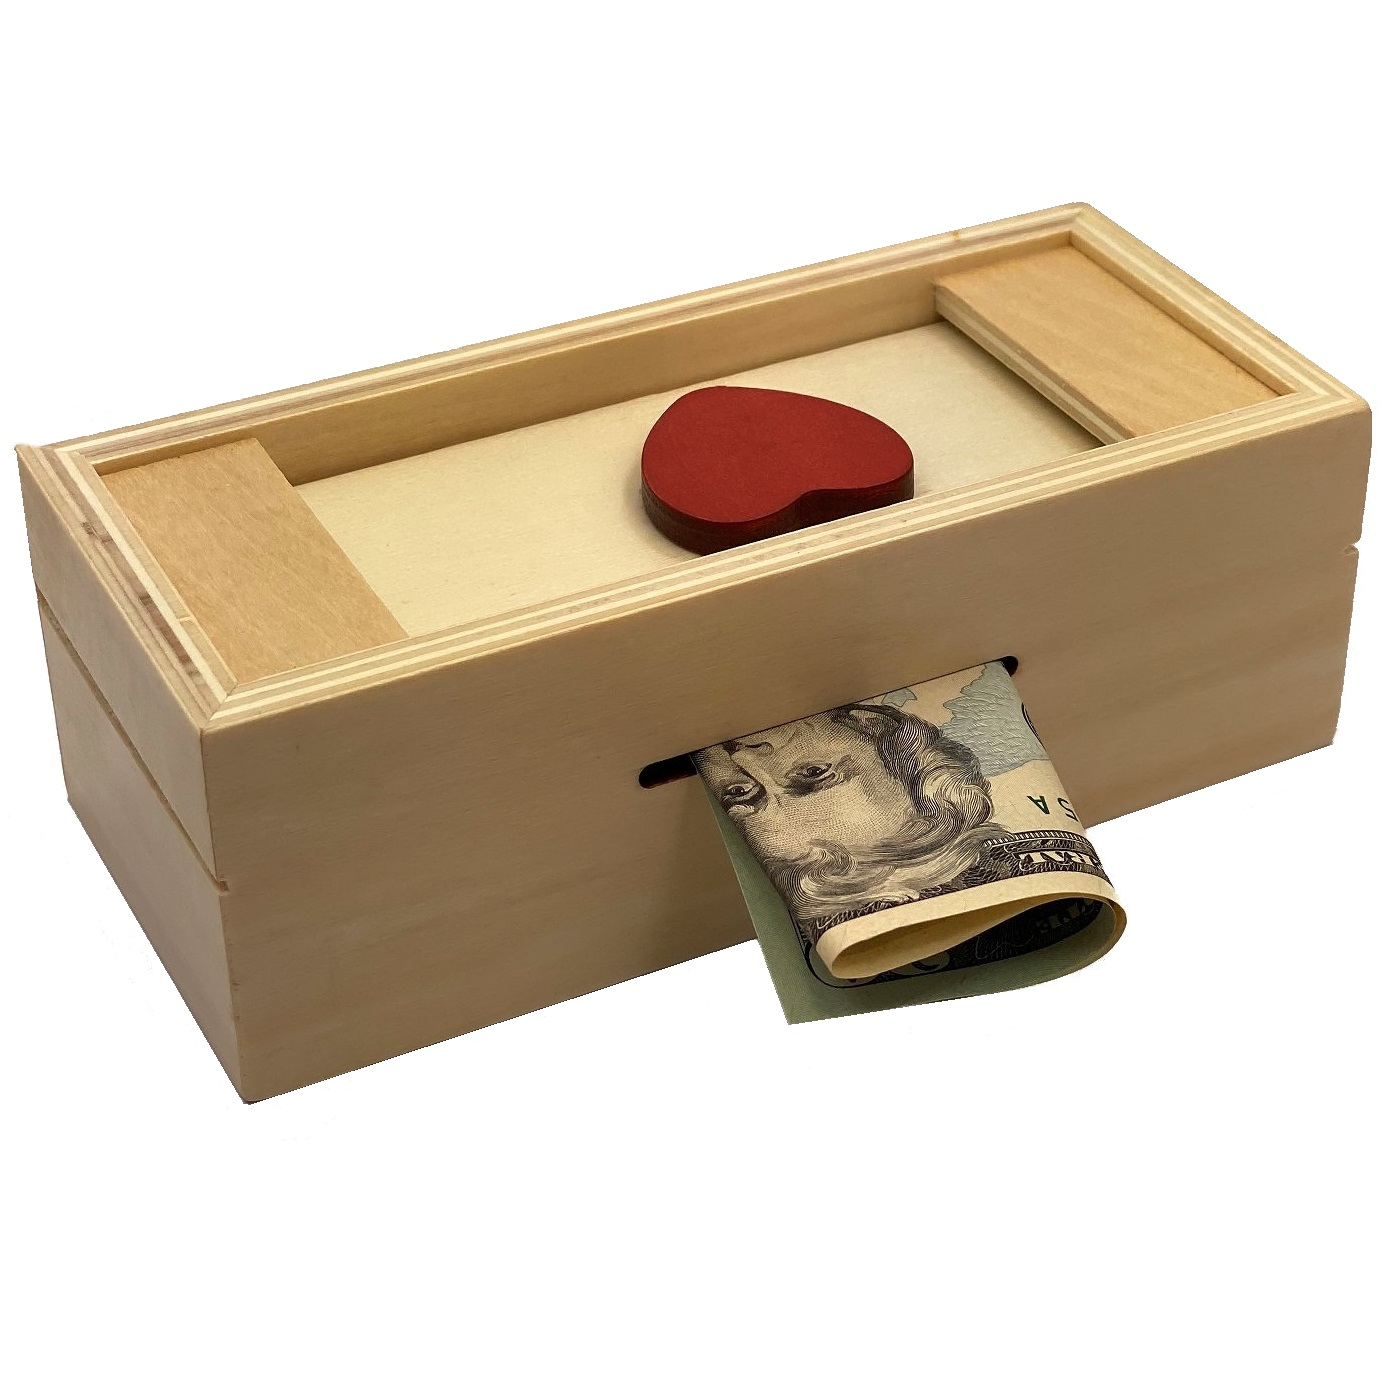 Great White Puzzle Box Secret Compartment holds rigs money